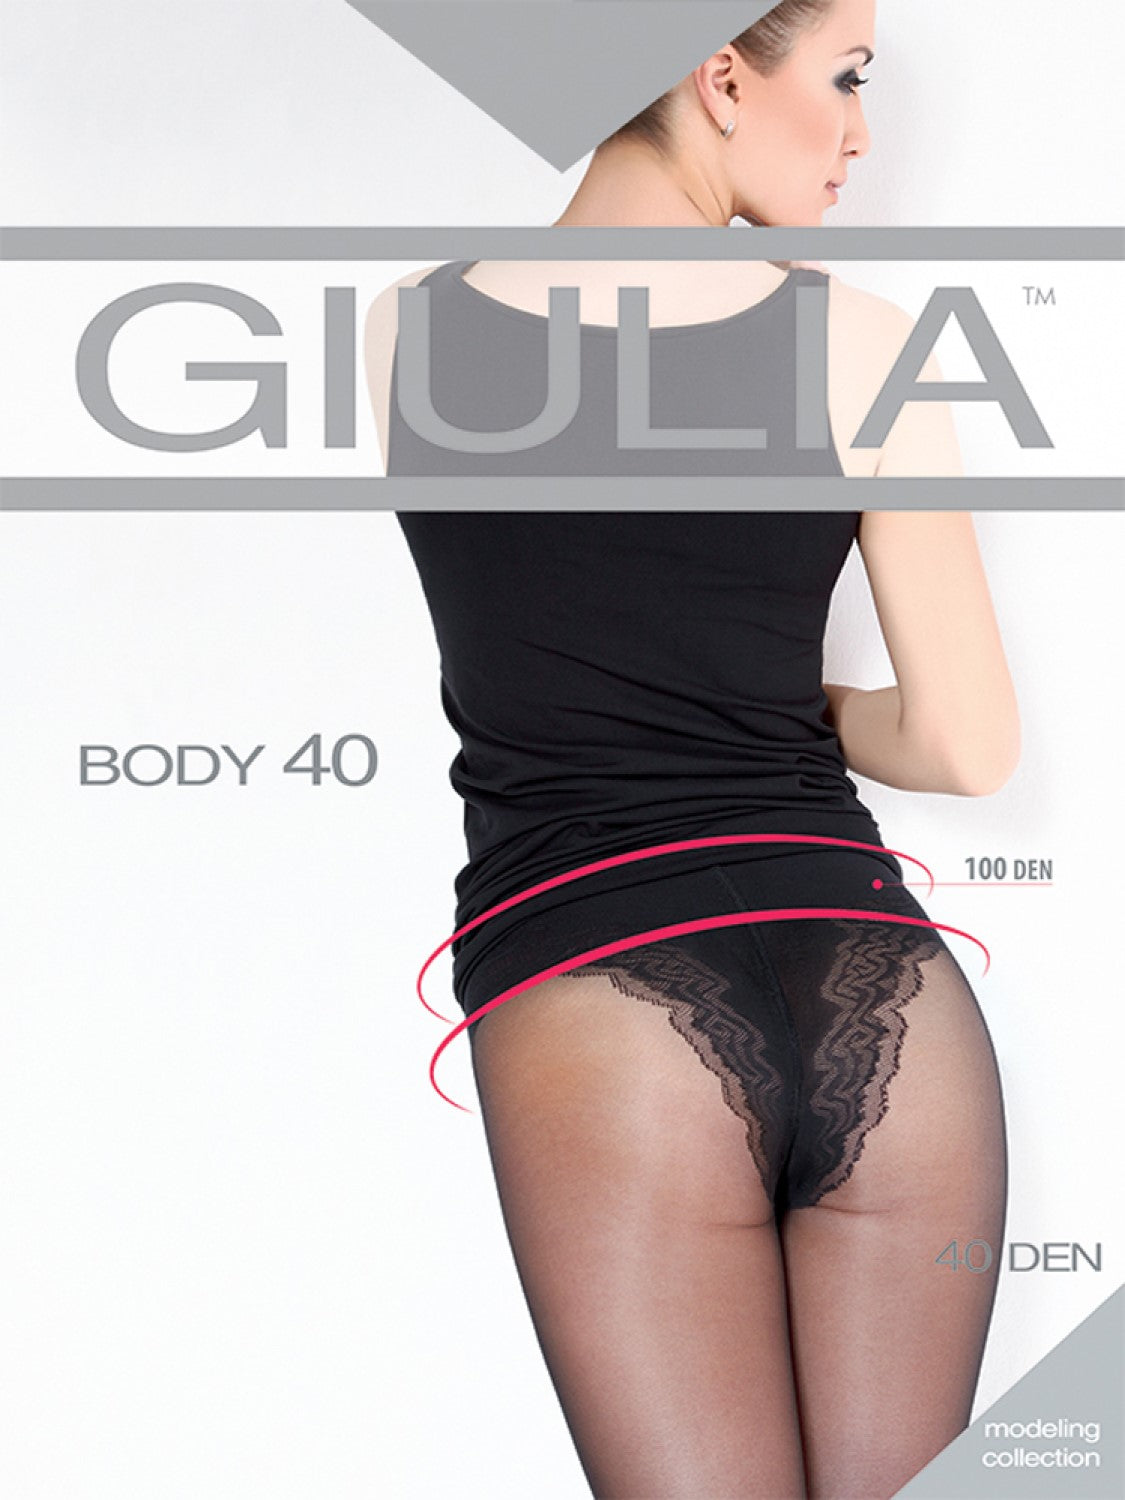 Giulia Body tights with bikini brief and targeted tummy control